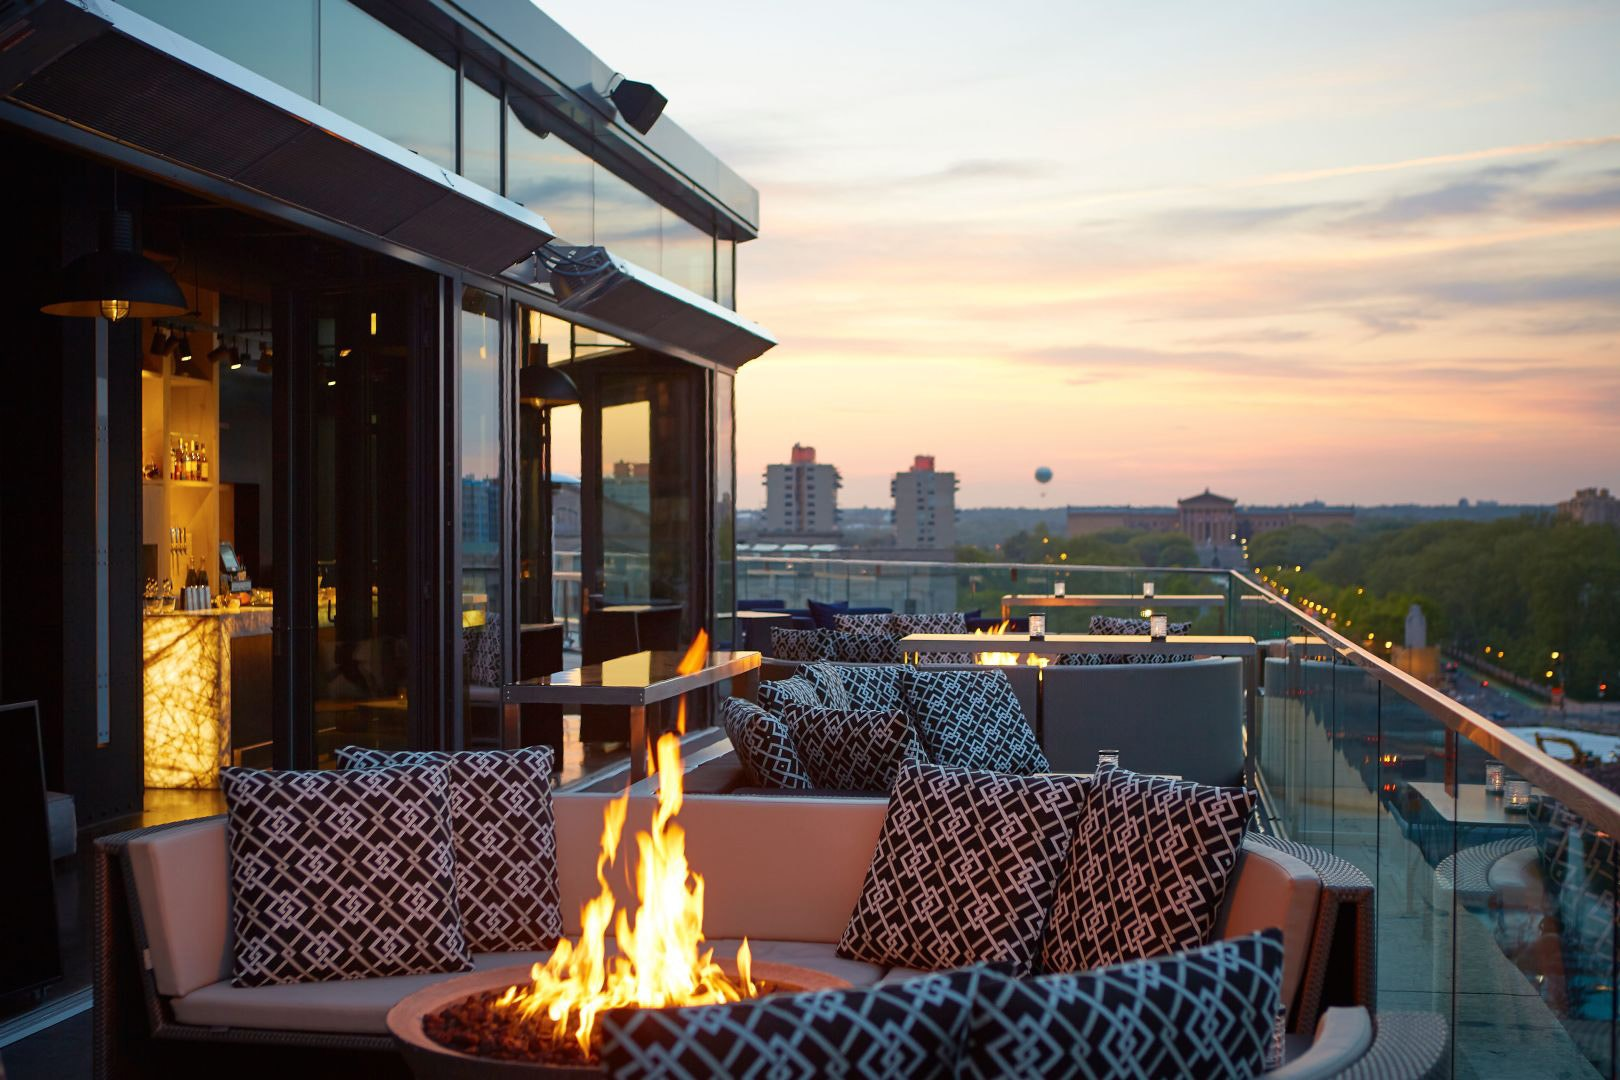 Settle in next to The Logan's rooftop fire pit after a day of taking in the fall colors at Philadelphia's green spaces.